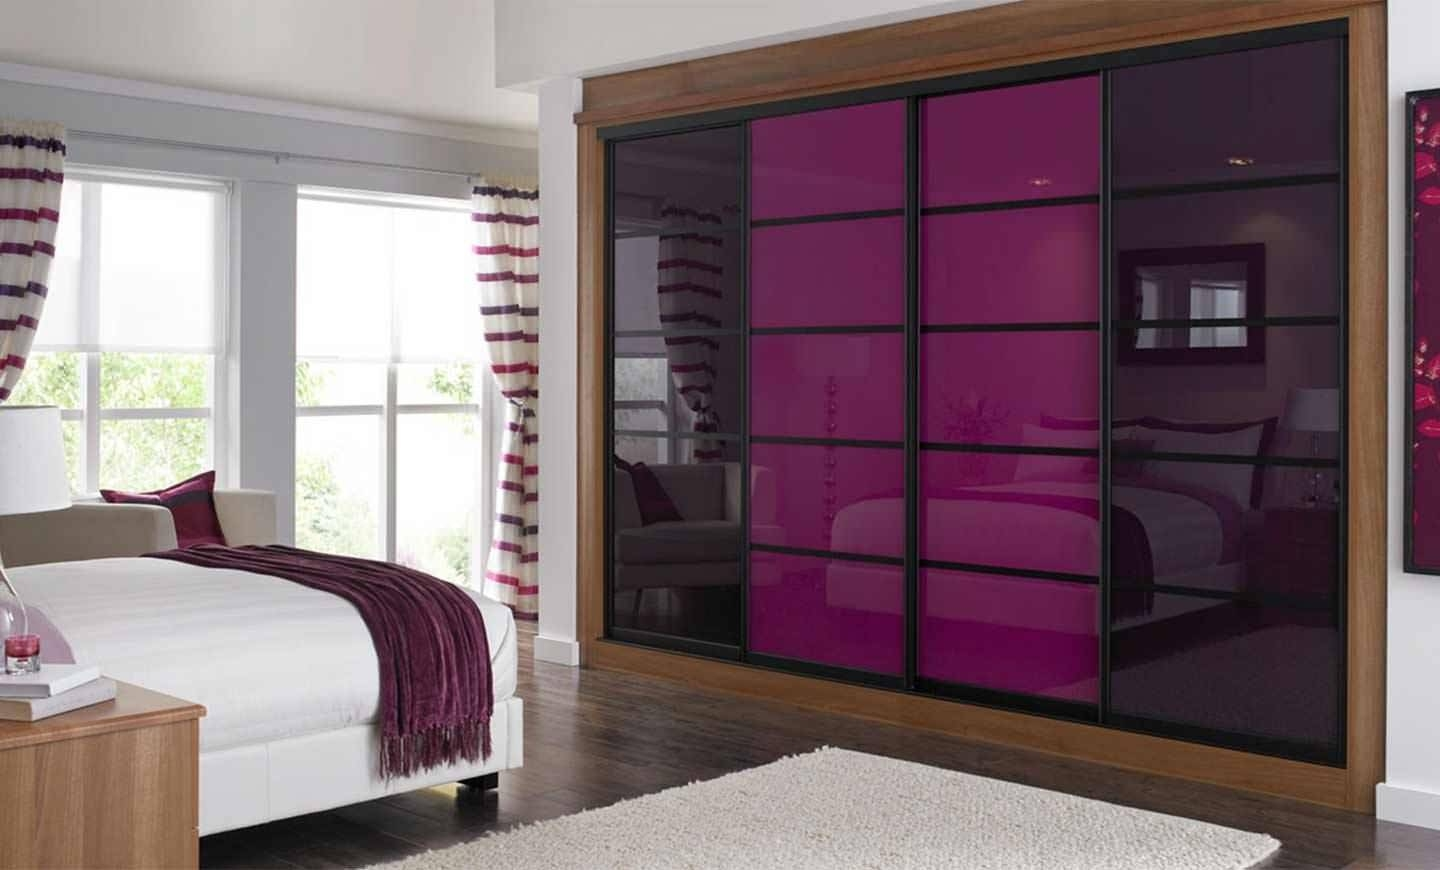 Bedroom Furniture : Luxury Wardrobes Wooden Wardrobe Kids Wardrobe within Kids Wardrobes (Image 4 of 15)